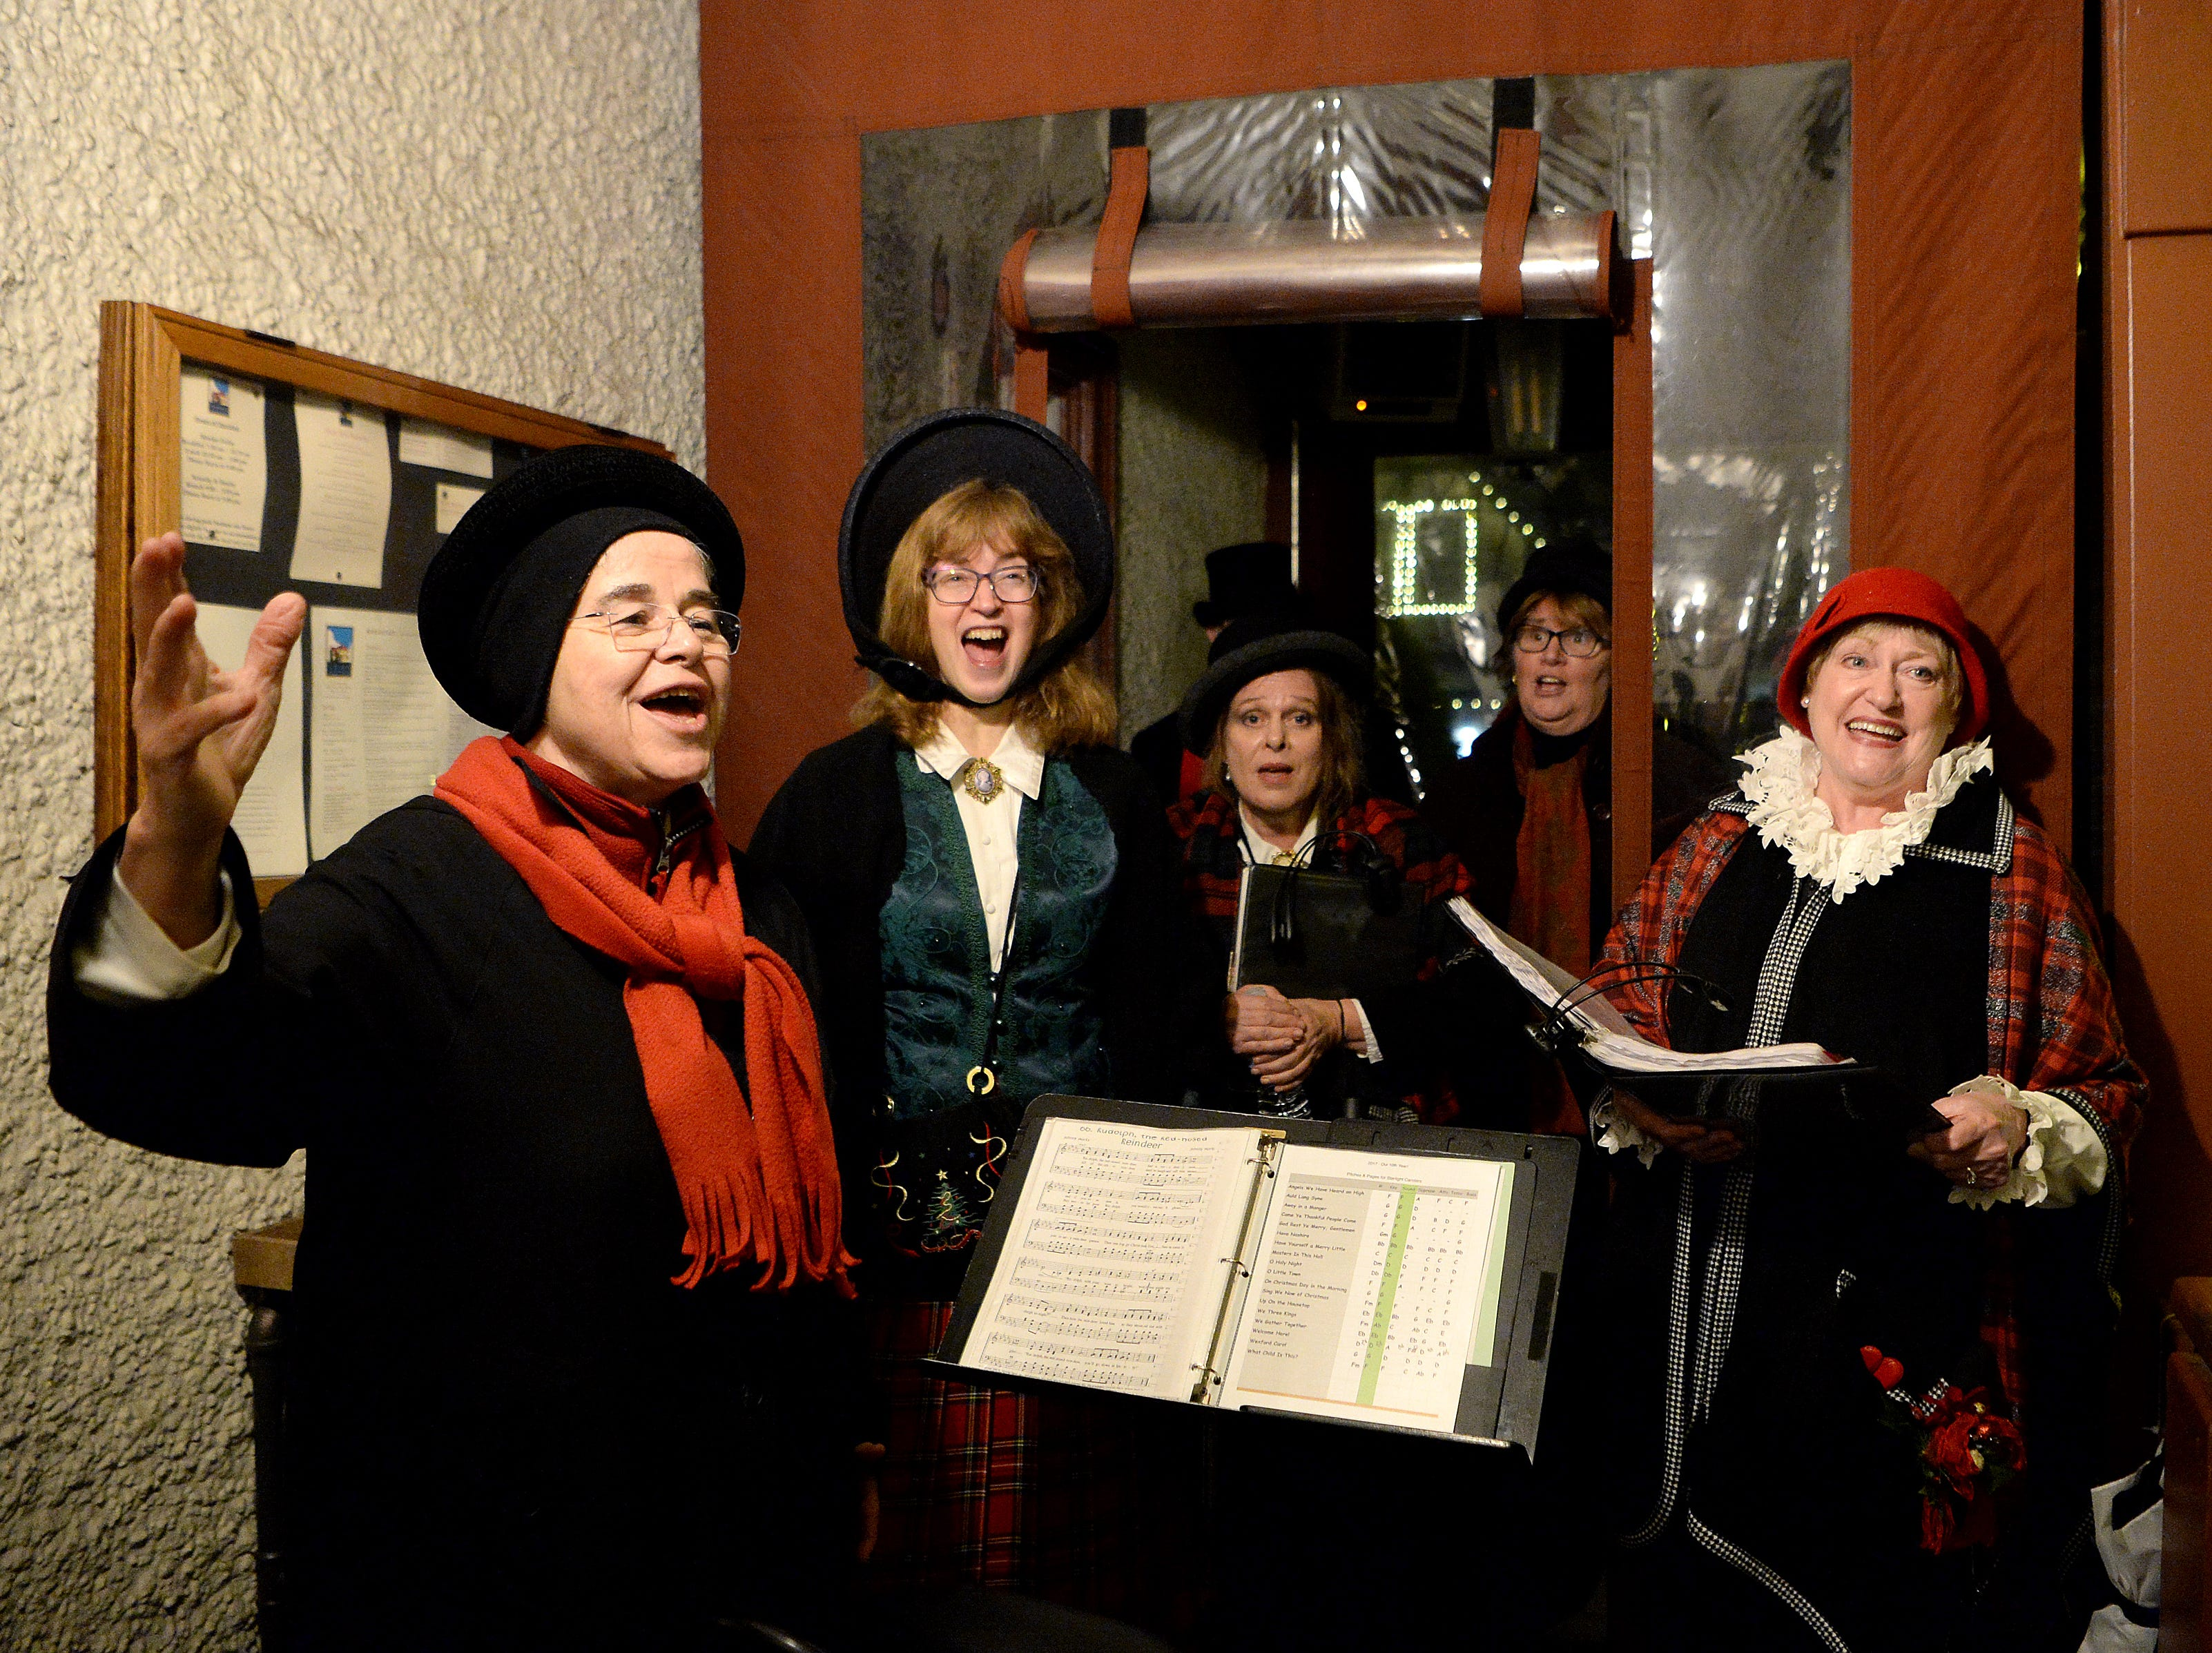 The Starlight Carolers perform on the porch of Corner Kitchen during the annual Biltmore Village Dickens Festival on Nov. 30, 2018. The singers have been performing for 11 years.